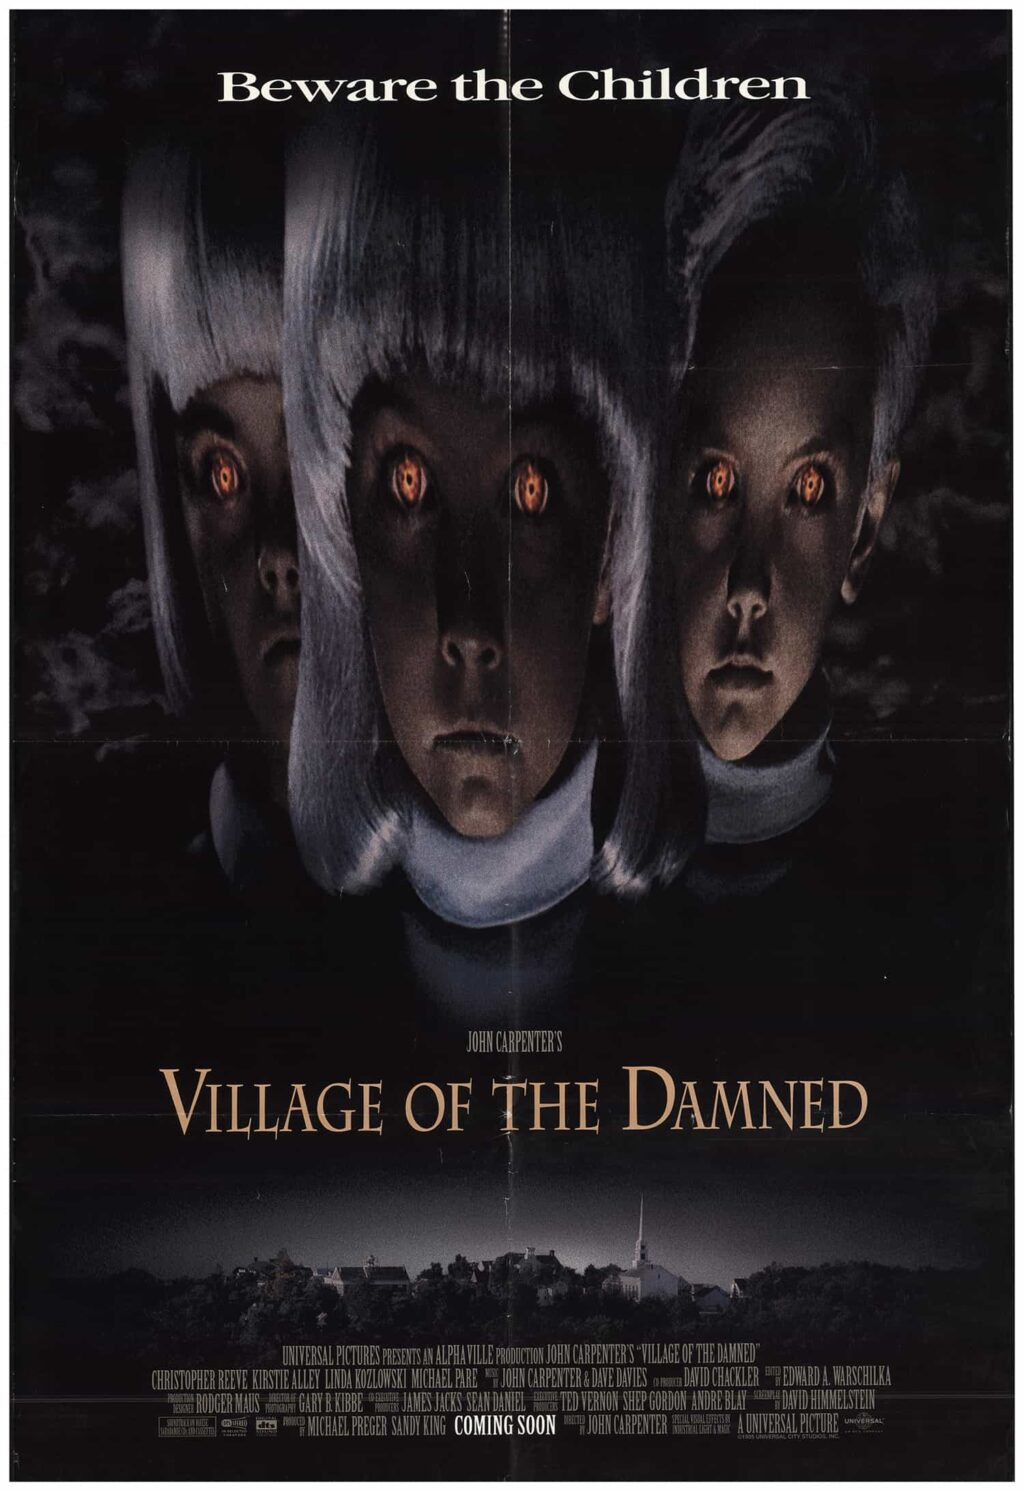 village of the damned 1995 poster 1024x1491 - This Day in Horror History: John Carpenter's VILLAGE OF THE DAMNED Was Unleashed in 1995